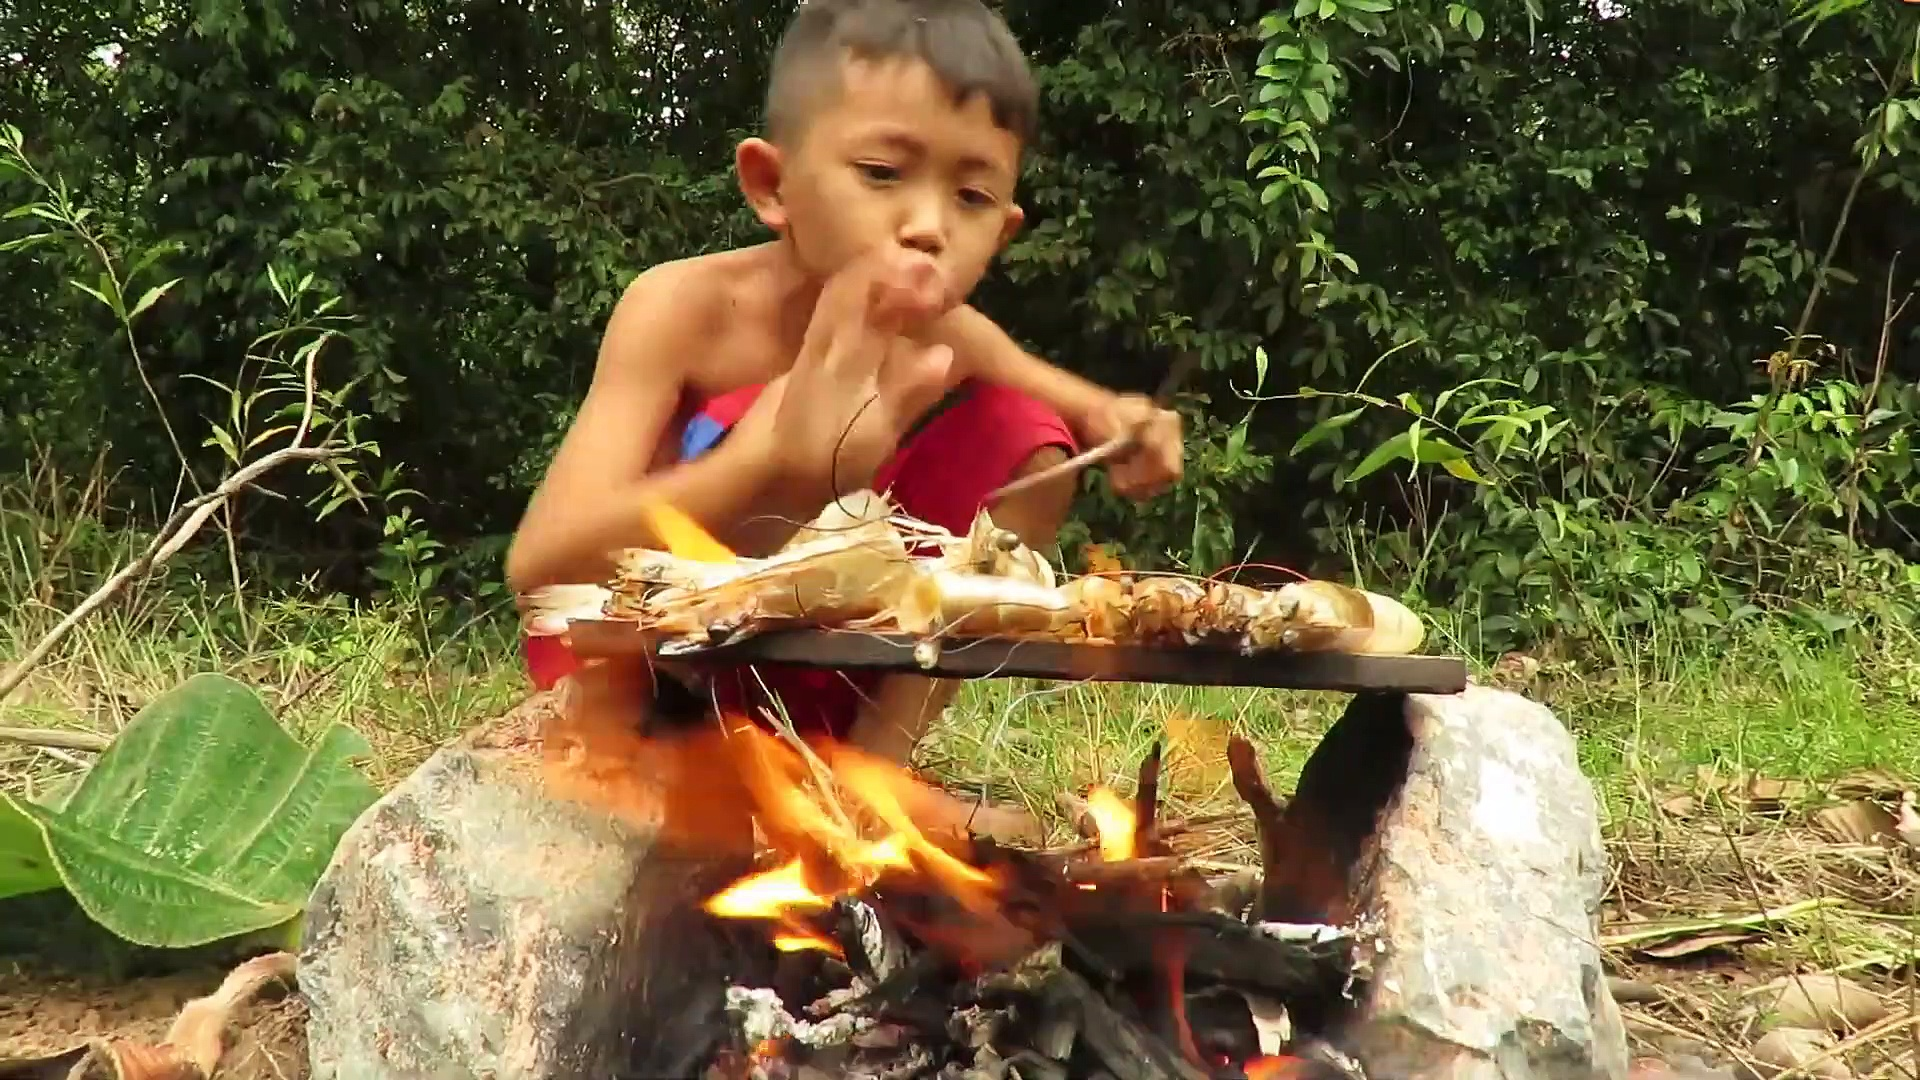 Primitive Technology – Smart boy cacth Shrimp and cooking – Eating delicious